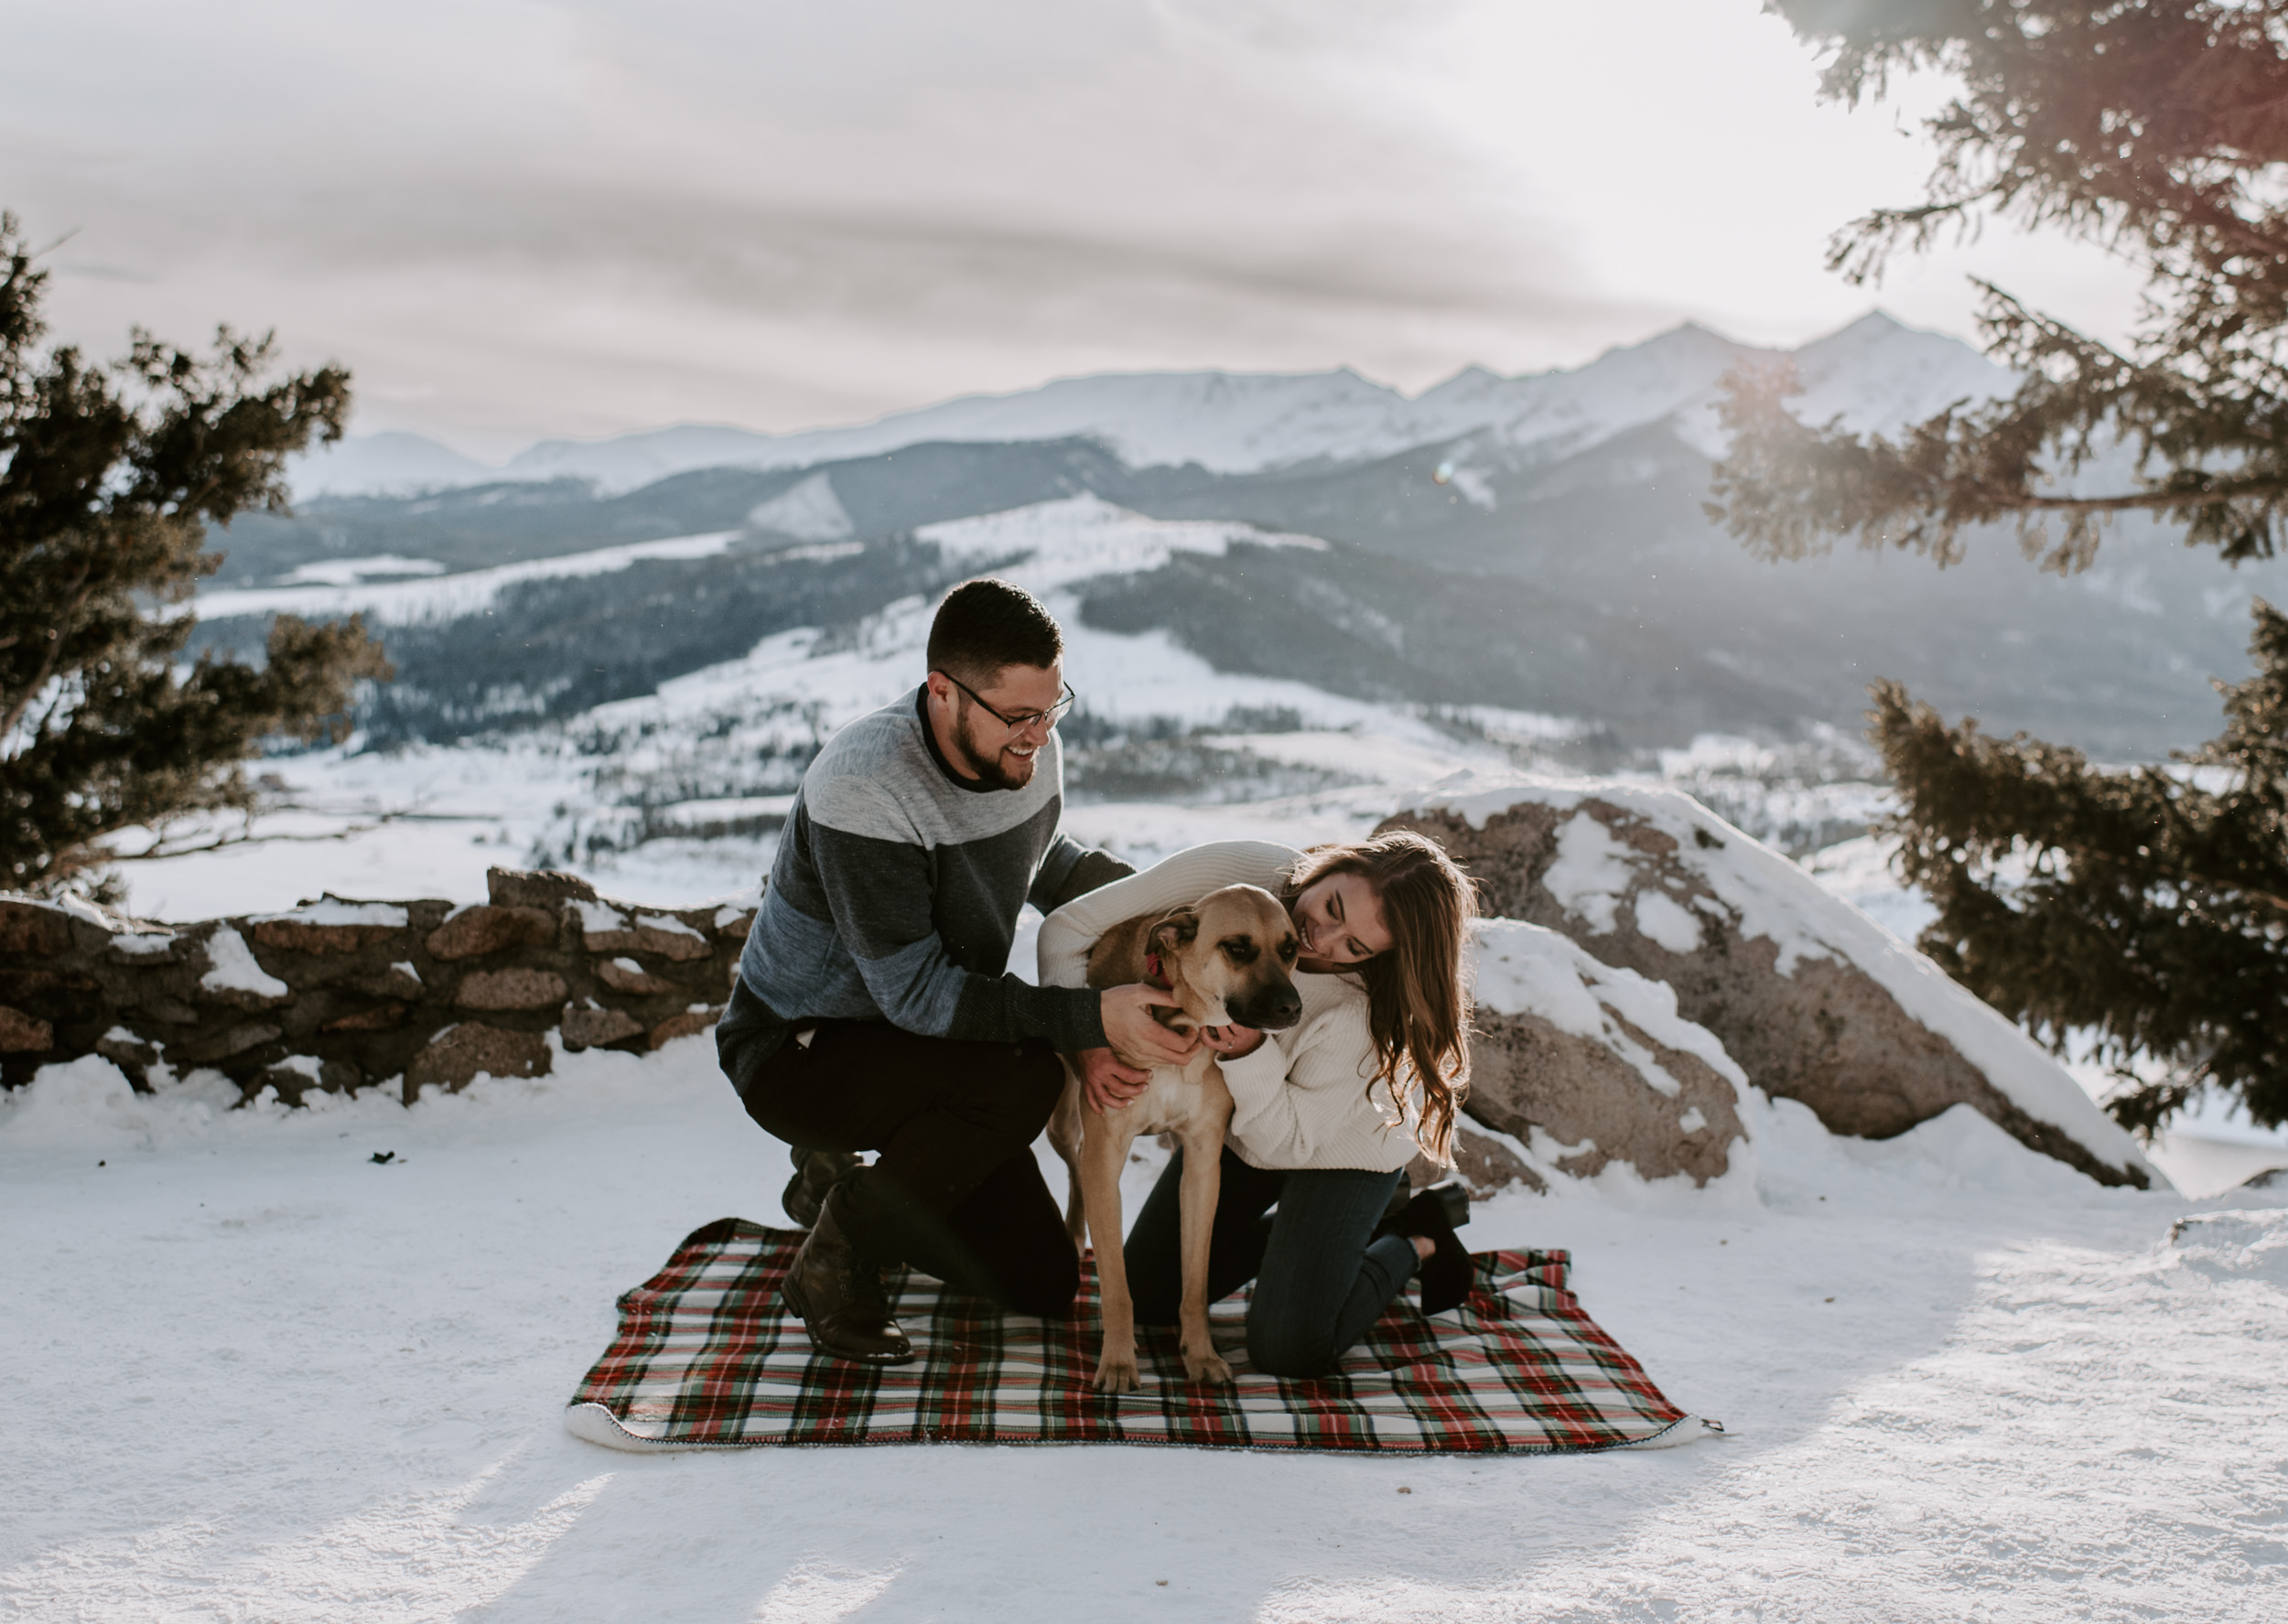 Sapphire Point mountain adventure engagement session in Dillon, Colorado. Colorado wedding and elopement photographer.